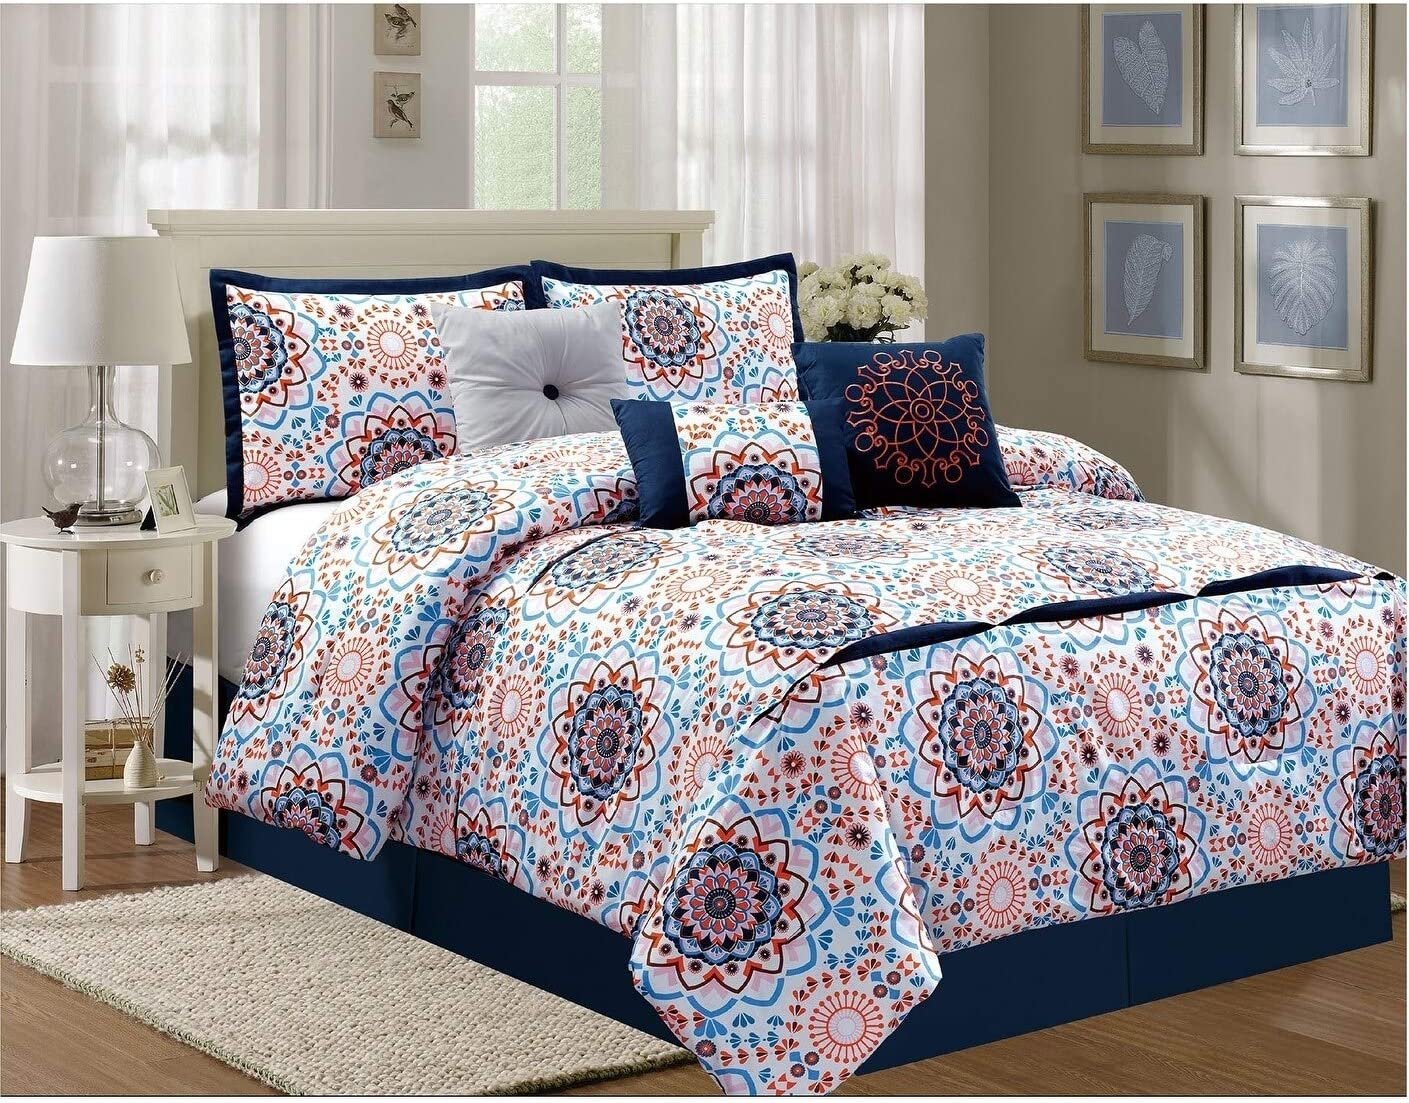 Elight Home 21158q 7 Piece Sunshine Luxury Comforter Set Queen Amazon Ca Home Kitchen